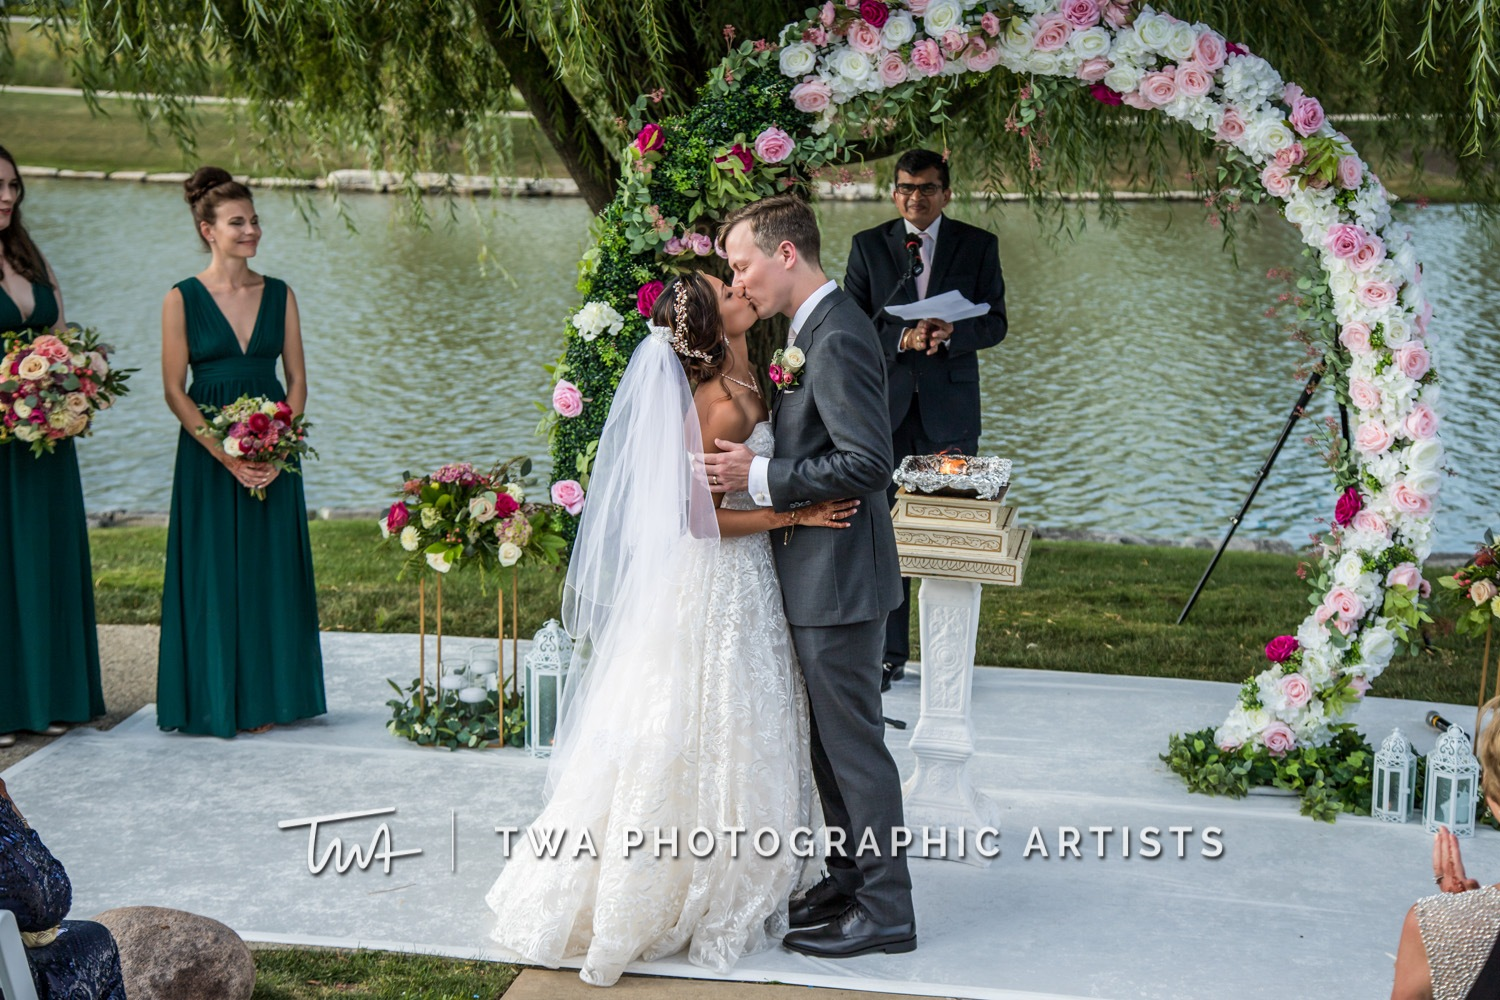 Chicago-Wedding-Photographer-TWA-Photographic-Artists-Shah_Billings_WM_TL-0731